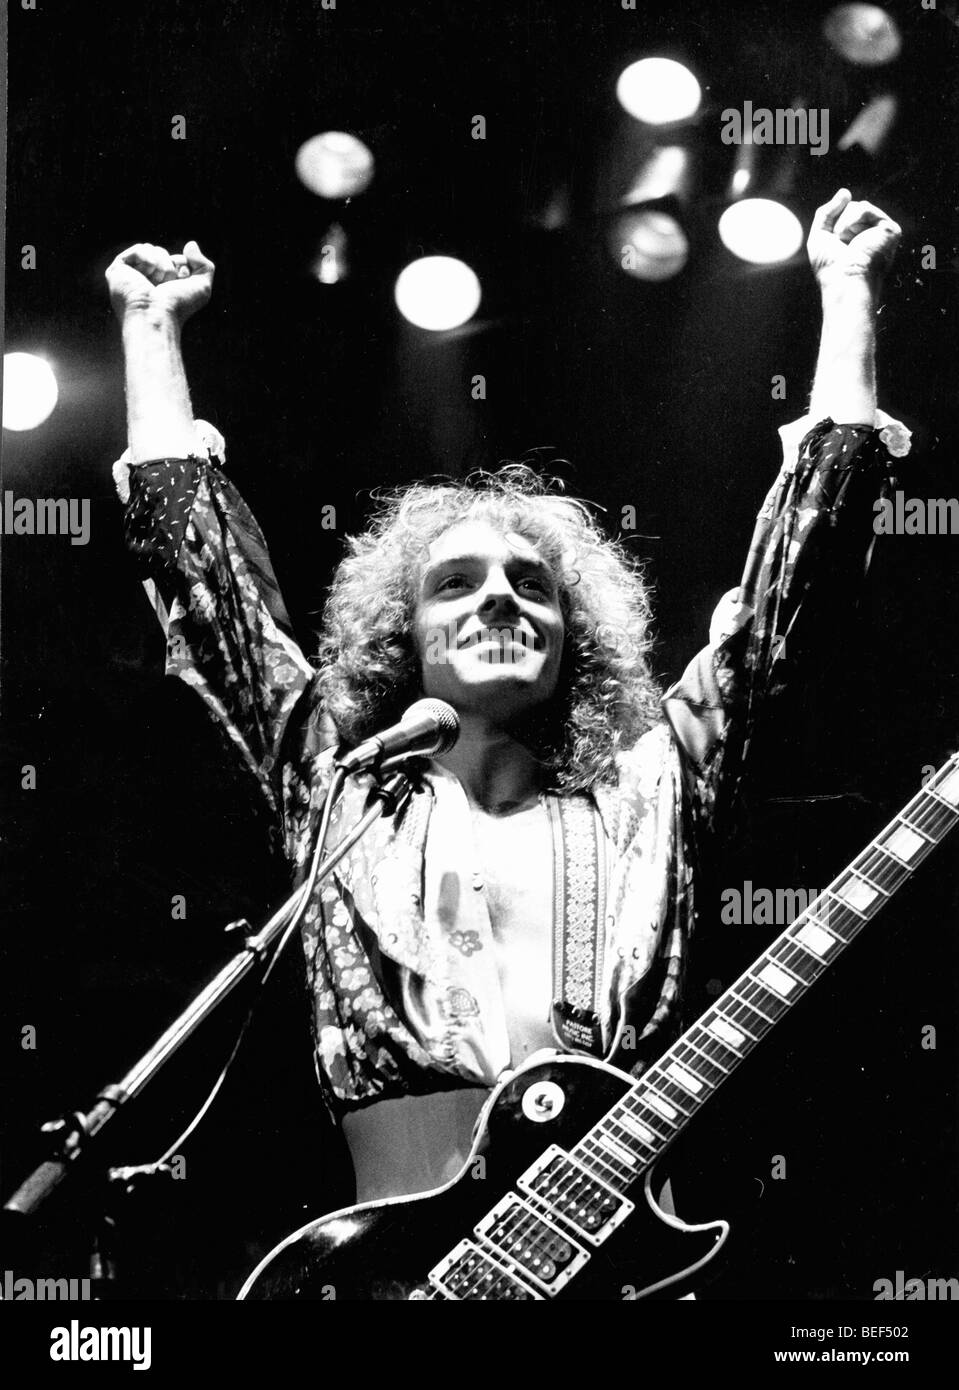 PETER FRAMPTON performs in concert circa 1976. Stock Photo